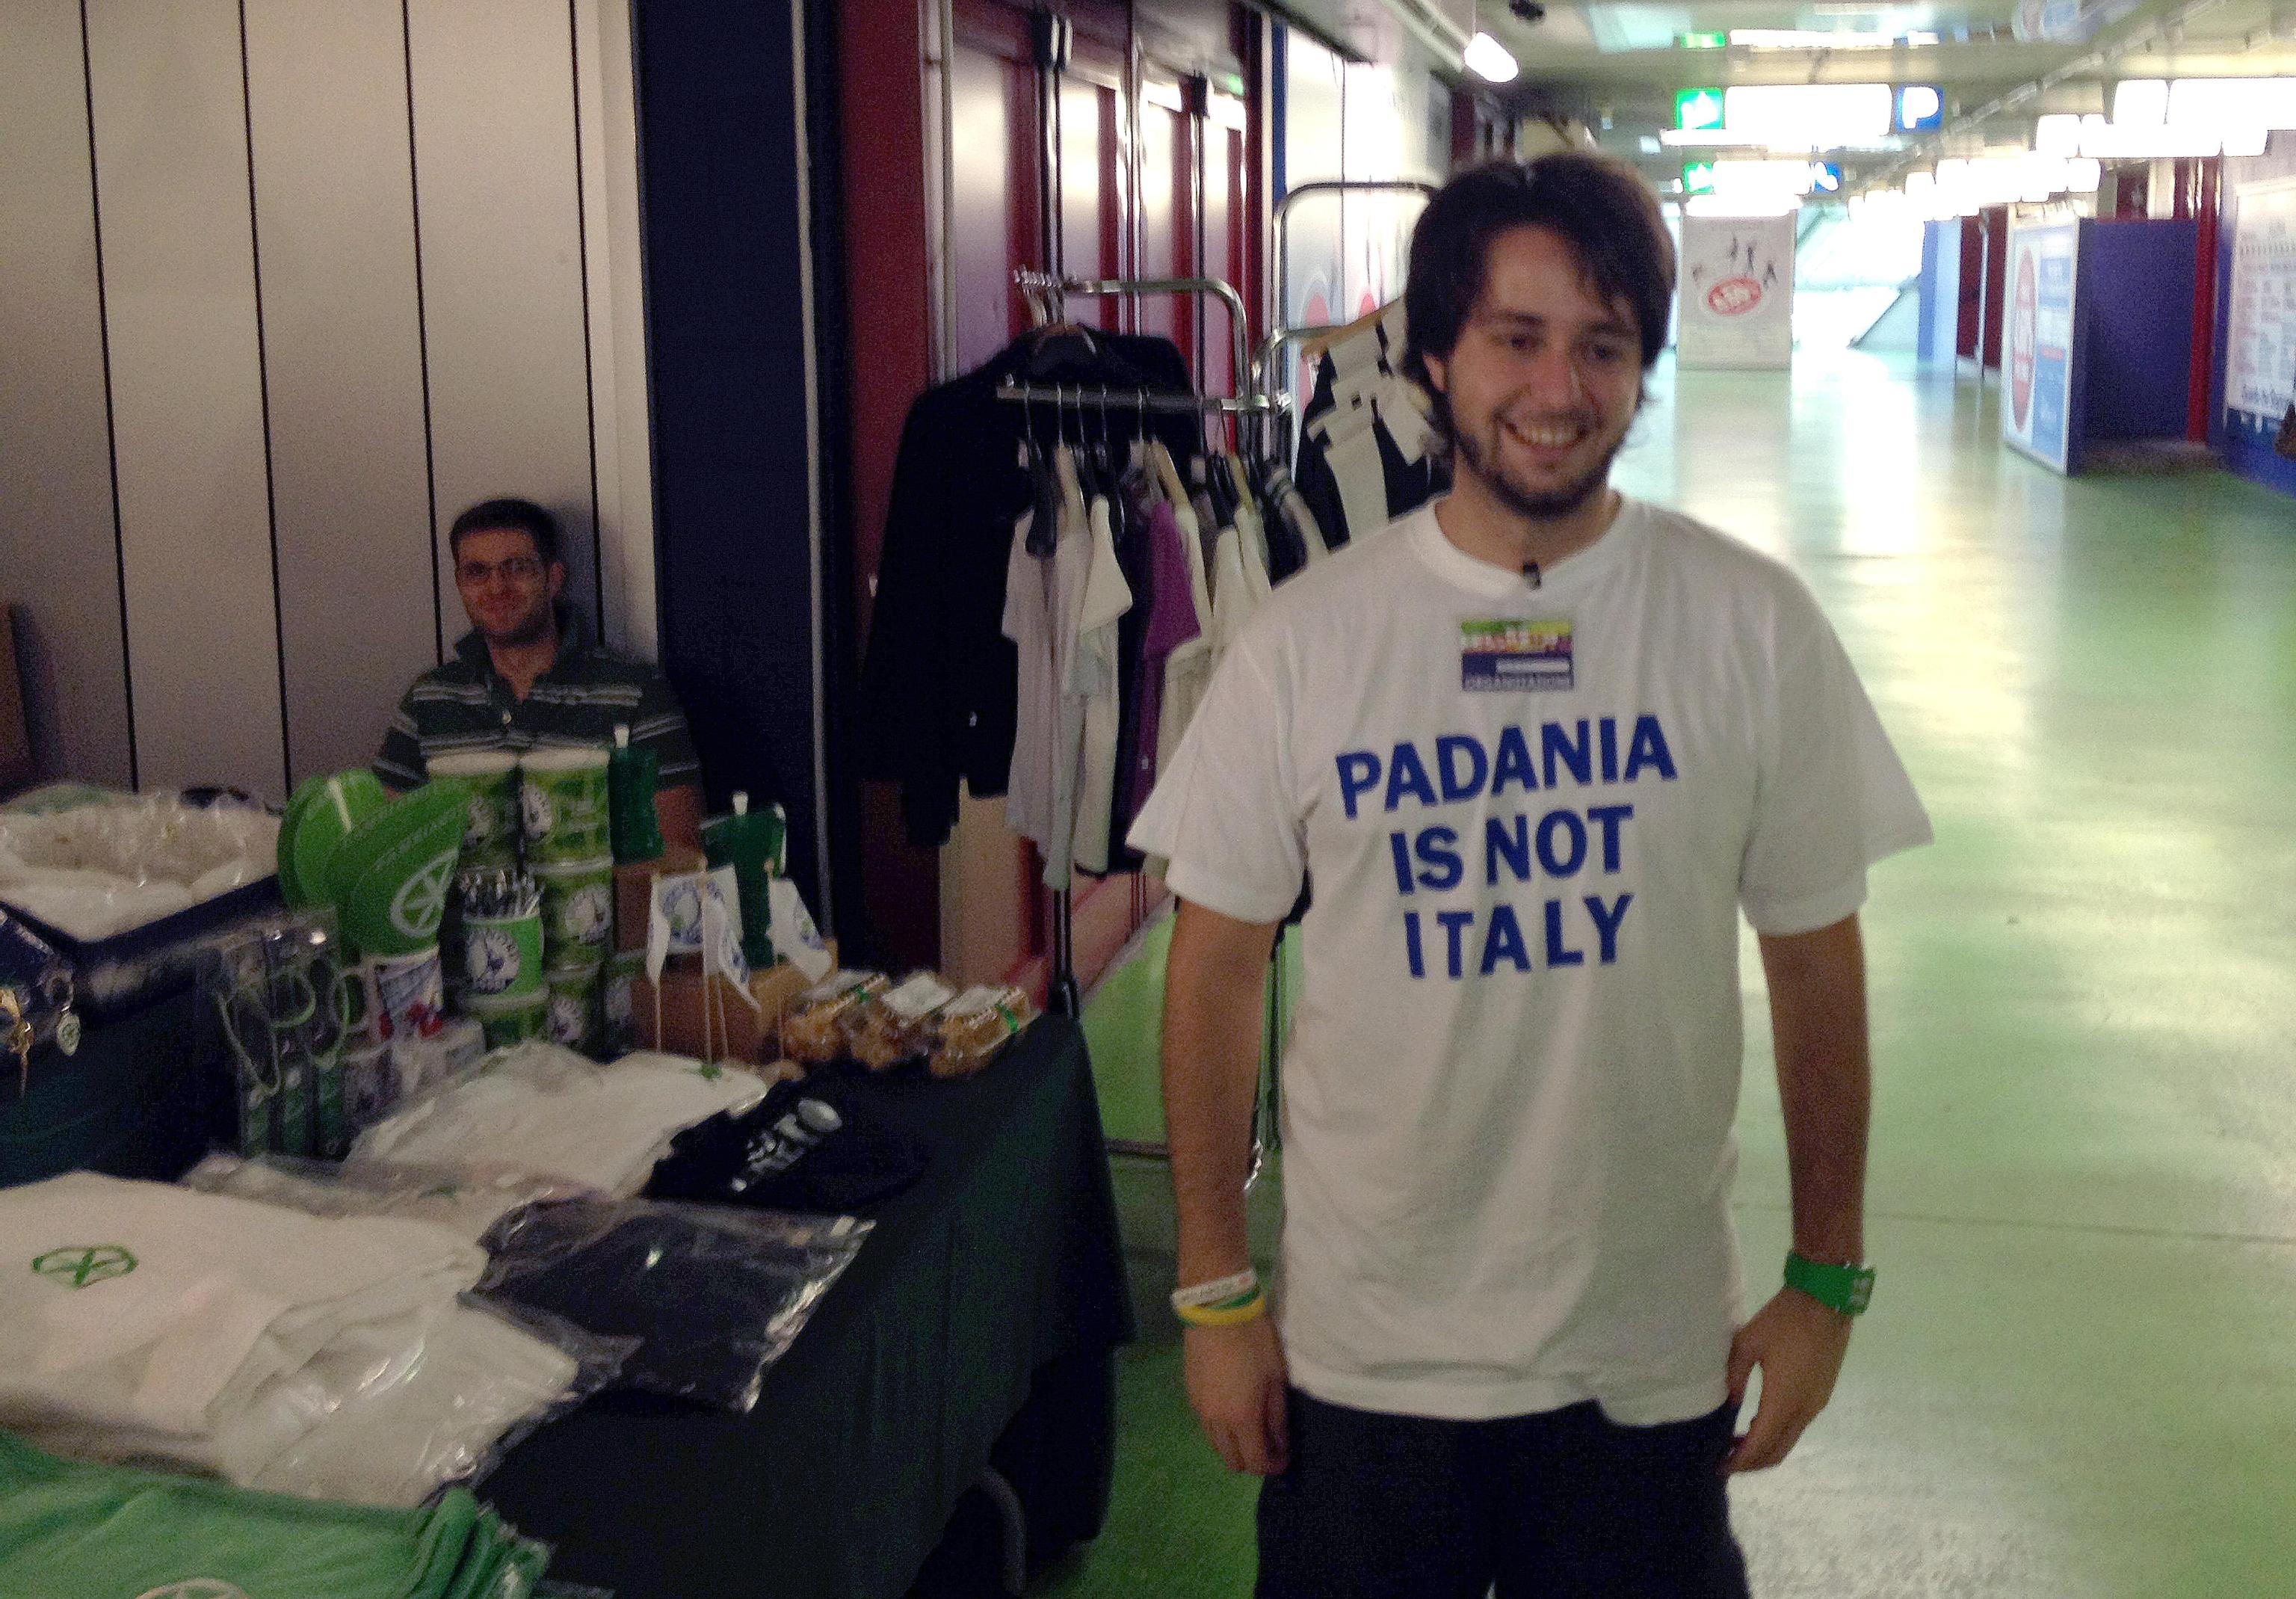 LEGA: GADGET, A RUBA LE T SHIRT 'PADANIA IS NOT ITALY'